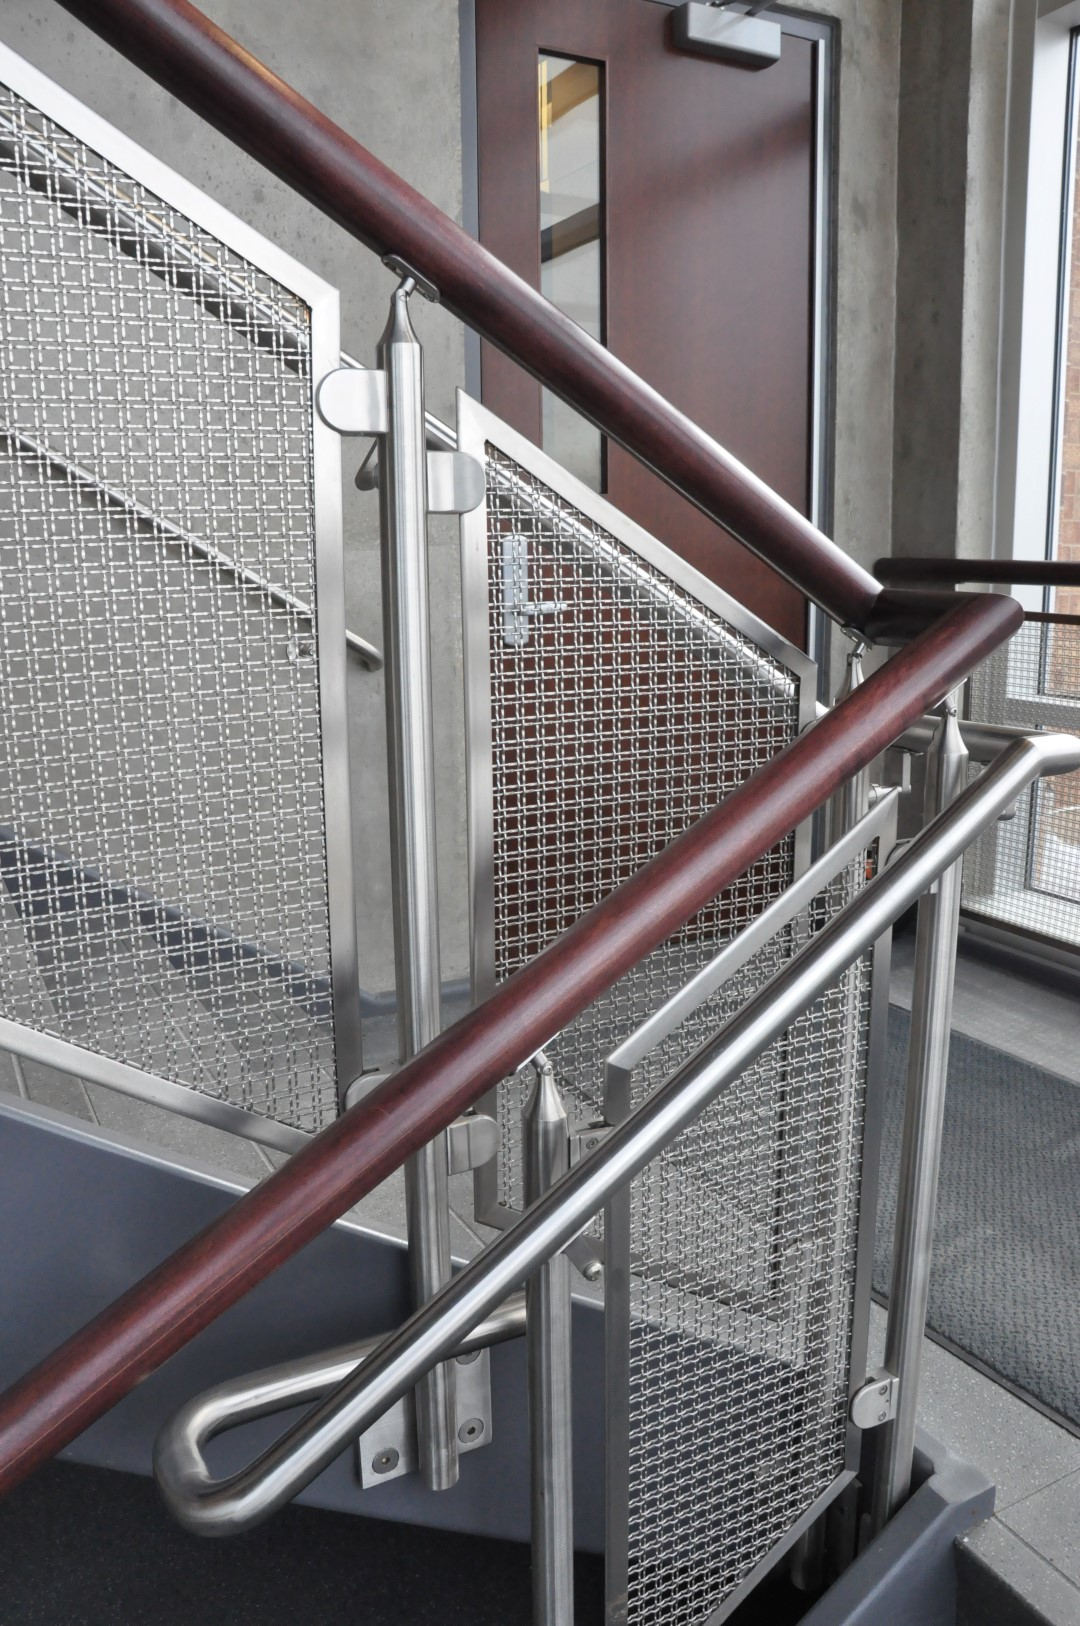 M22-22 woven wire mesh infill panels is mounted using glass clips in this new university building.